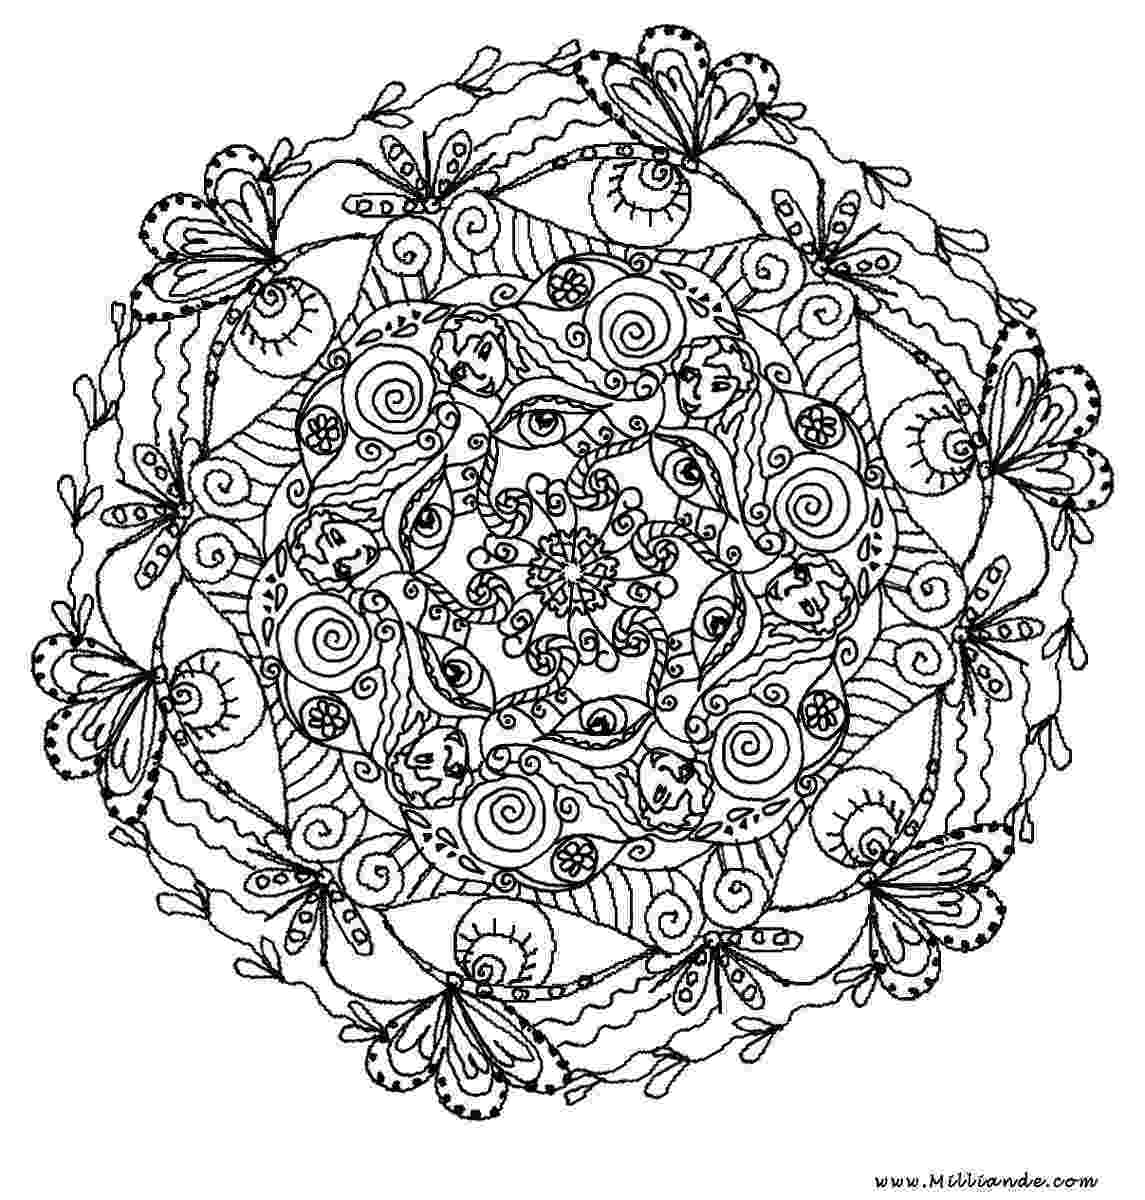 coloring pages for adults mandala animal mandala coloring pages to download and print for free mandala for coloring pages adults